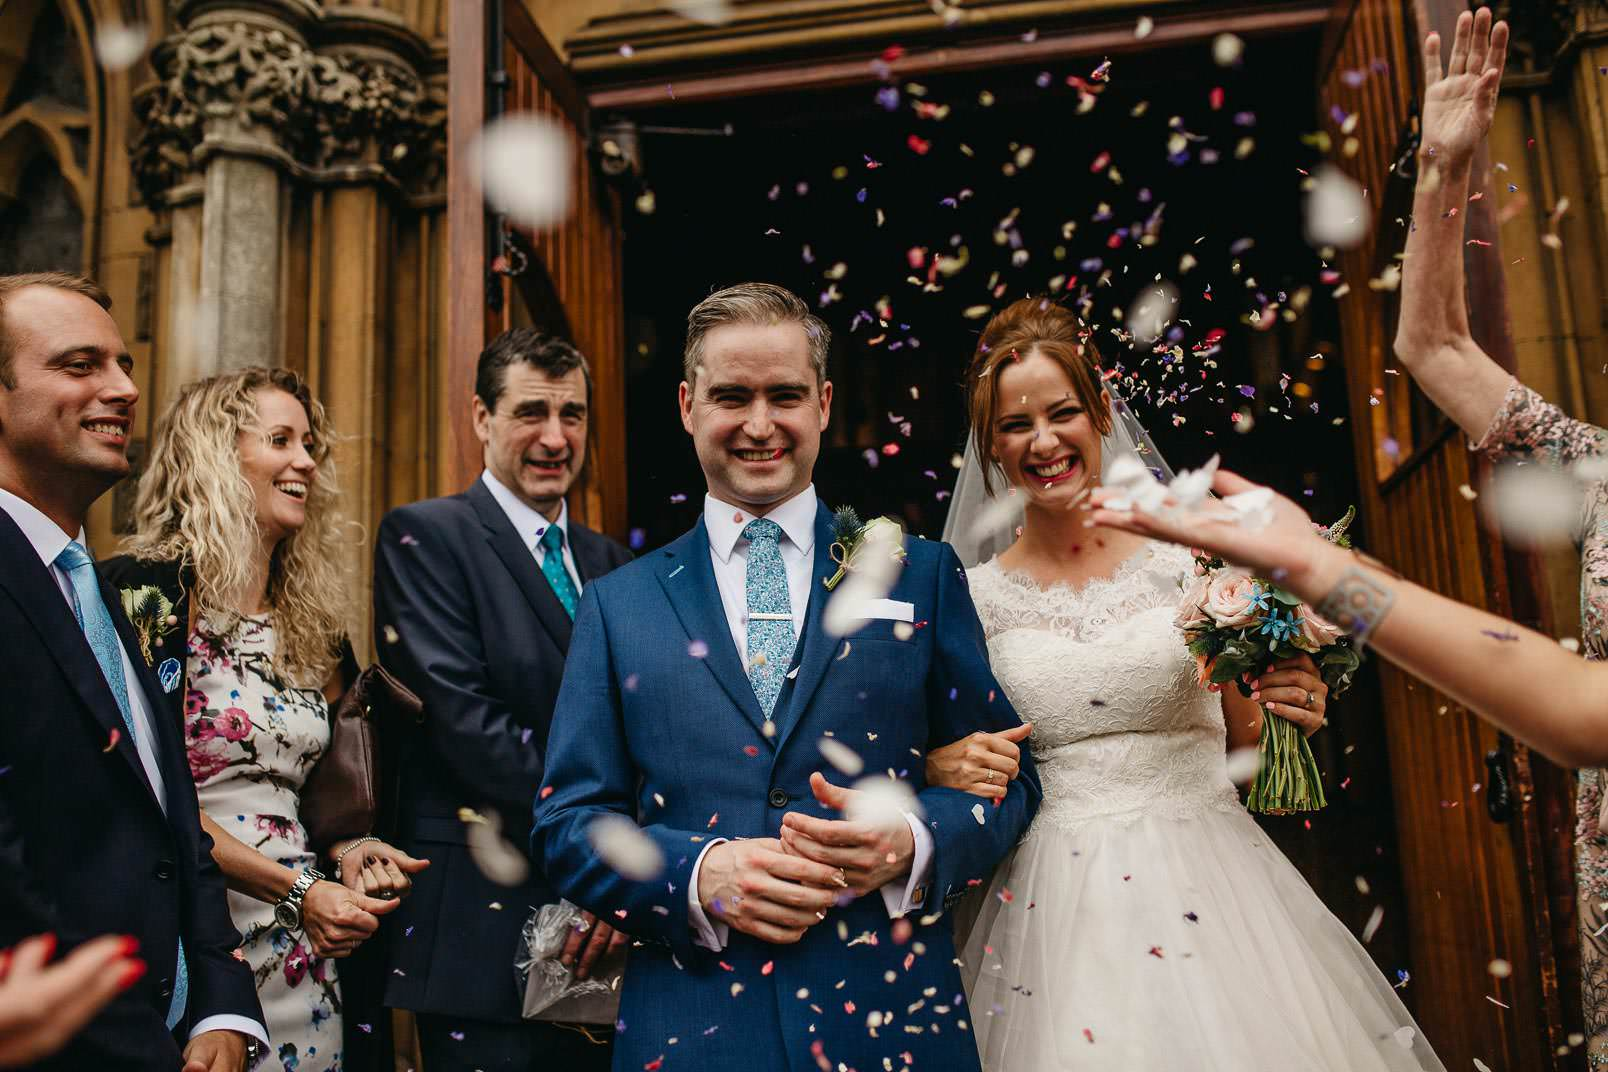 bride and groom walk when guests throw confetti